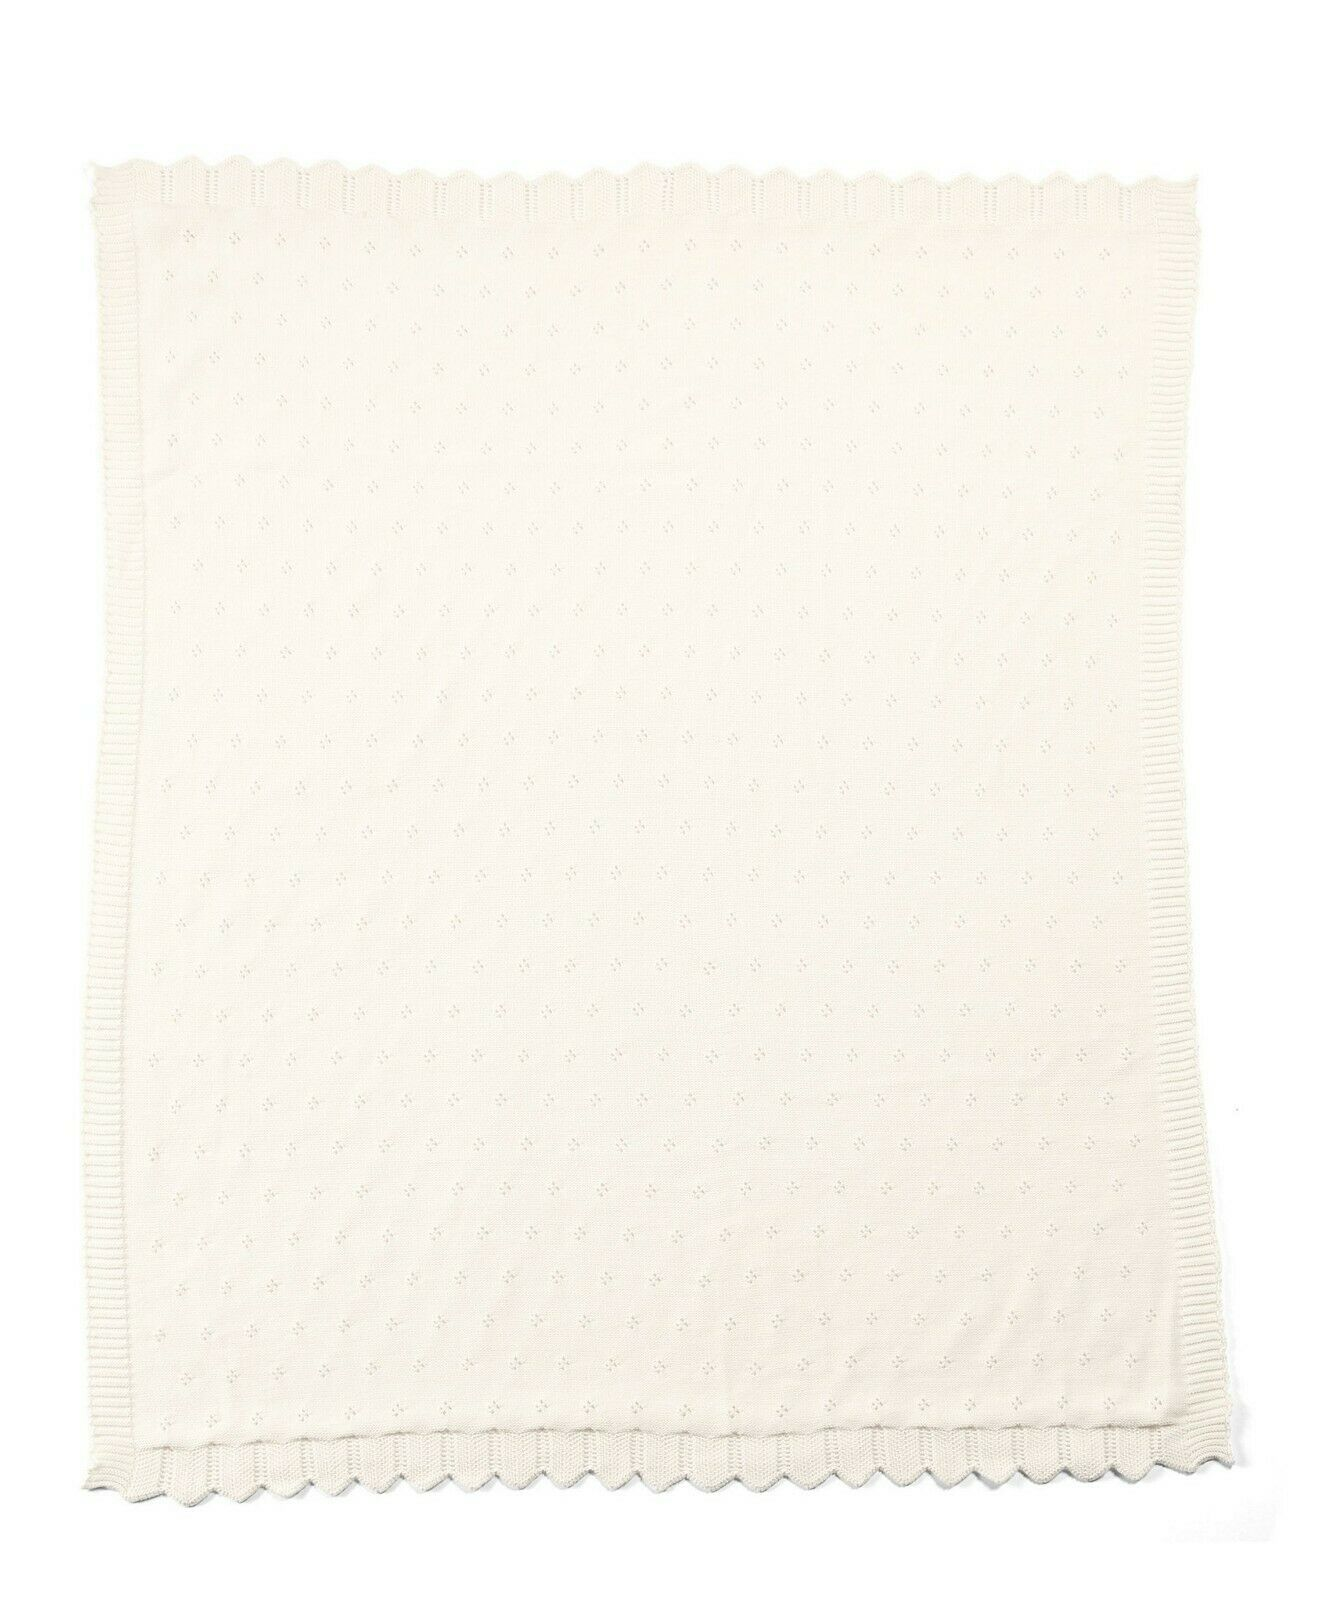 Mamas & Papas - Lilybelle - Cream Pointelle Knitted Blanket 70 x 90cm